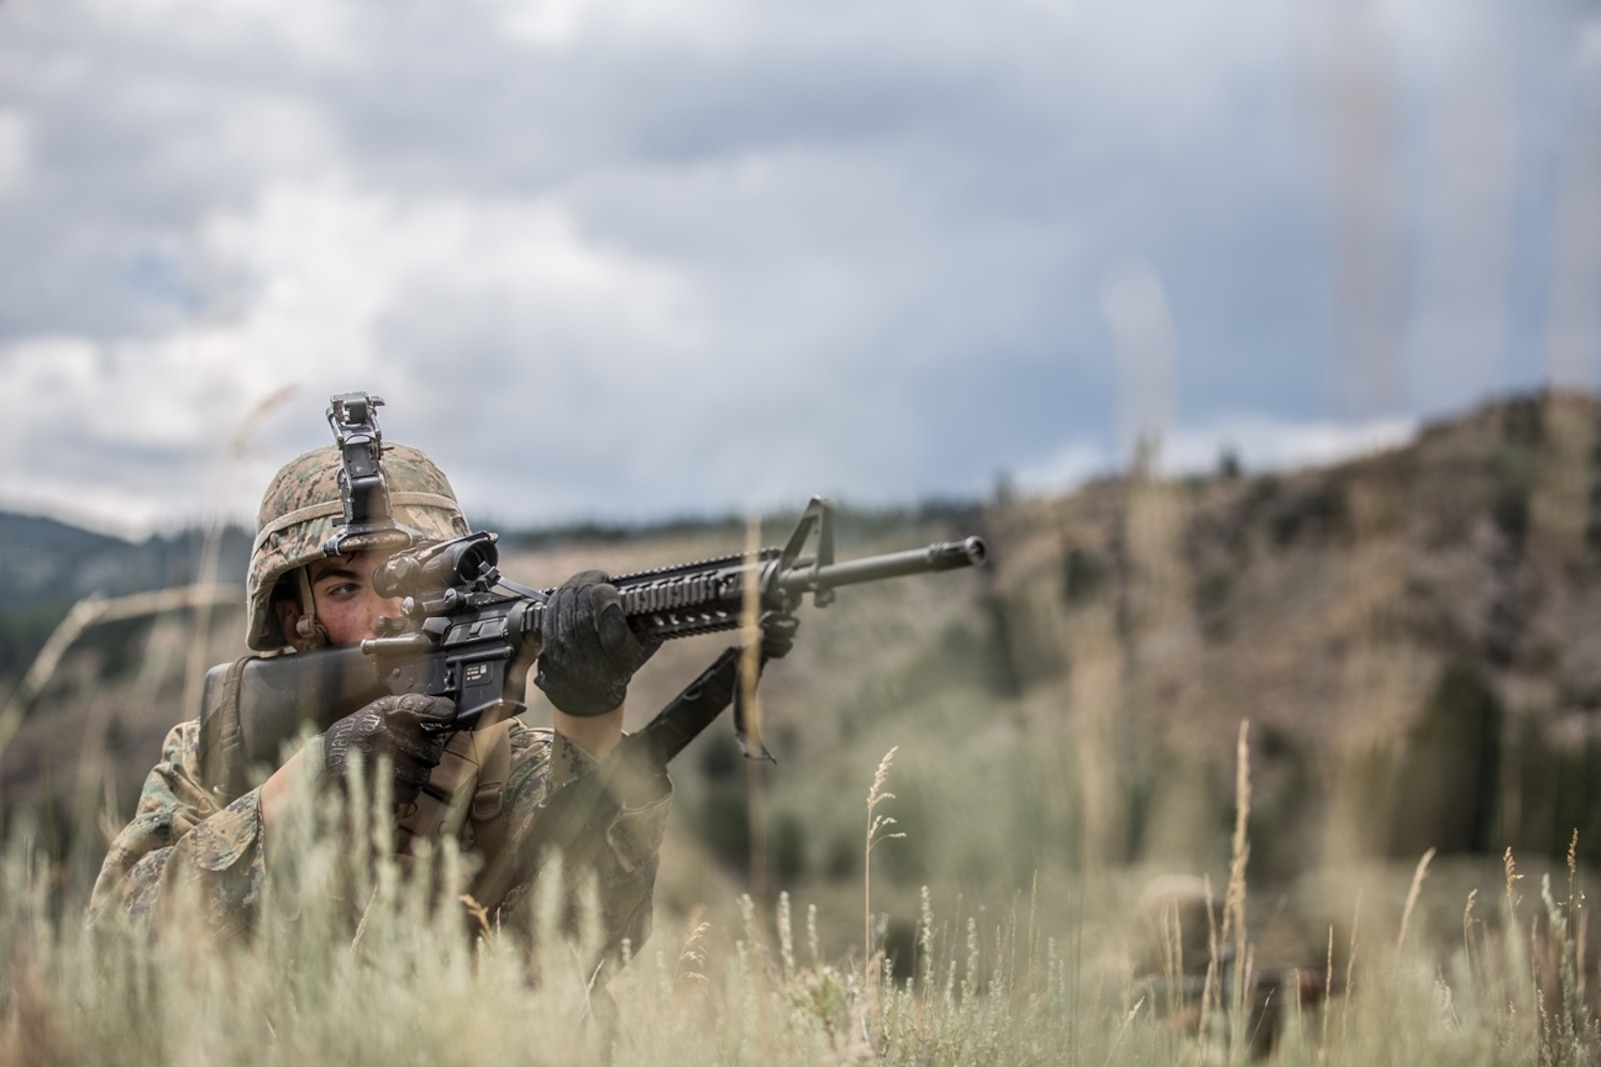 BRIDGEPORT, Calif. - U.S. Marine Pfc. Morris Jones, a motor transportation operator with Combat Logistics Battalion 5, Combat Logistics Regiment 1, 1st Marine Logistics Group, posts security during a combat physical training session during a field operation while participating in Mountain Training Exercise 4-17 at Marine Corps Mountain Warfare Training Center, Aug. 2, 2017. Marines participating in Mountain Training Exercise post security to demonstrate protecting various areas against any possible simulated attack or ambush in the mountainous terrain. (U.S. Marine Corps photo by Lance Cpl. Timothy Shoemaker)